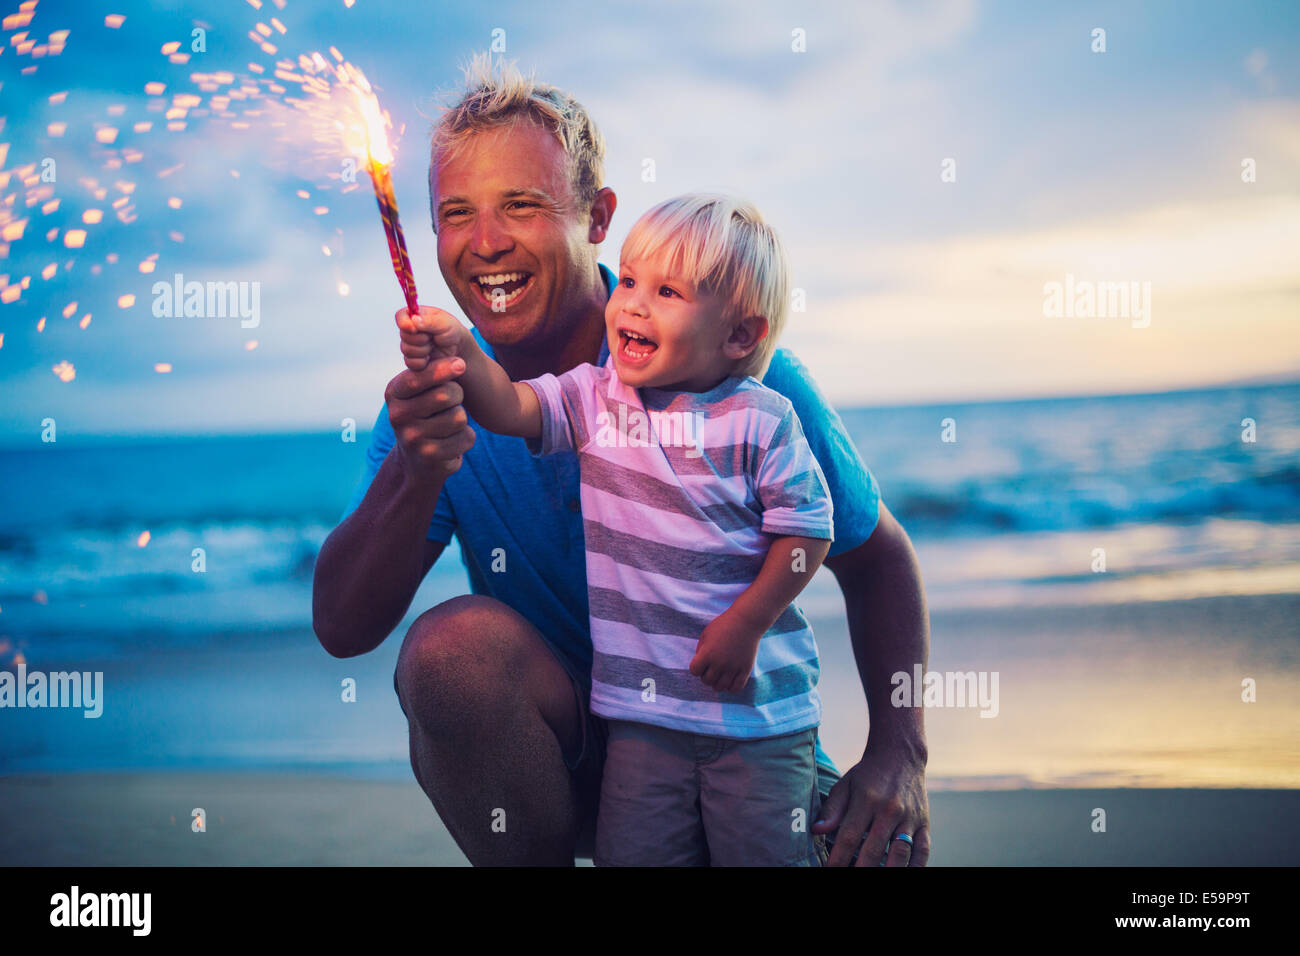 Father and son lighting sparklers on the beach at sunset - Stock Image